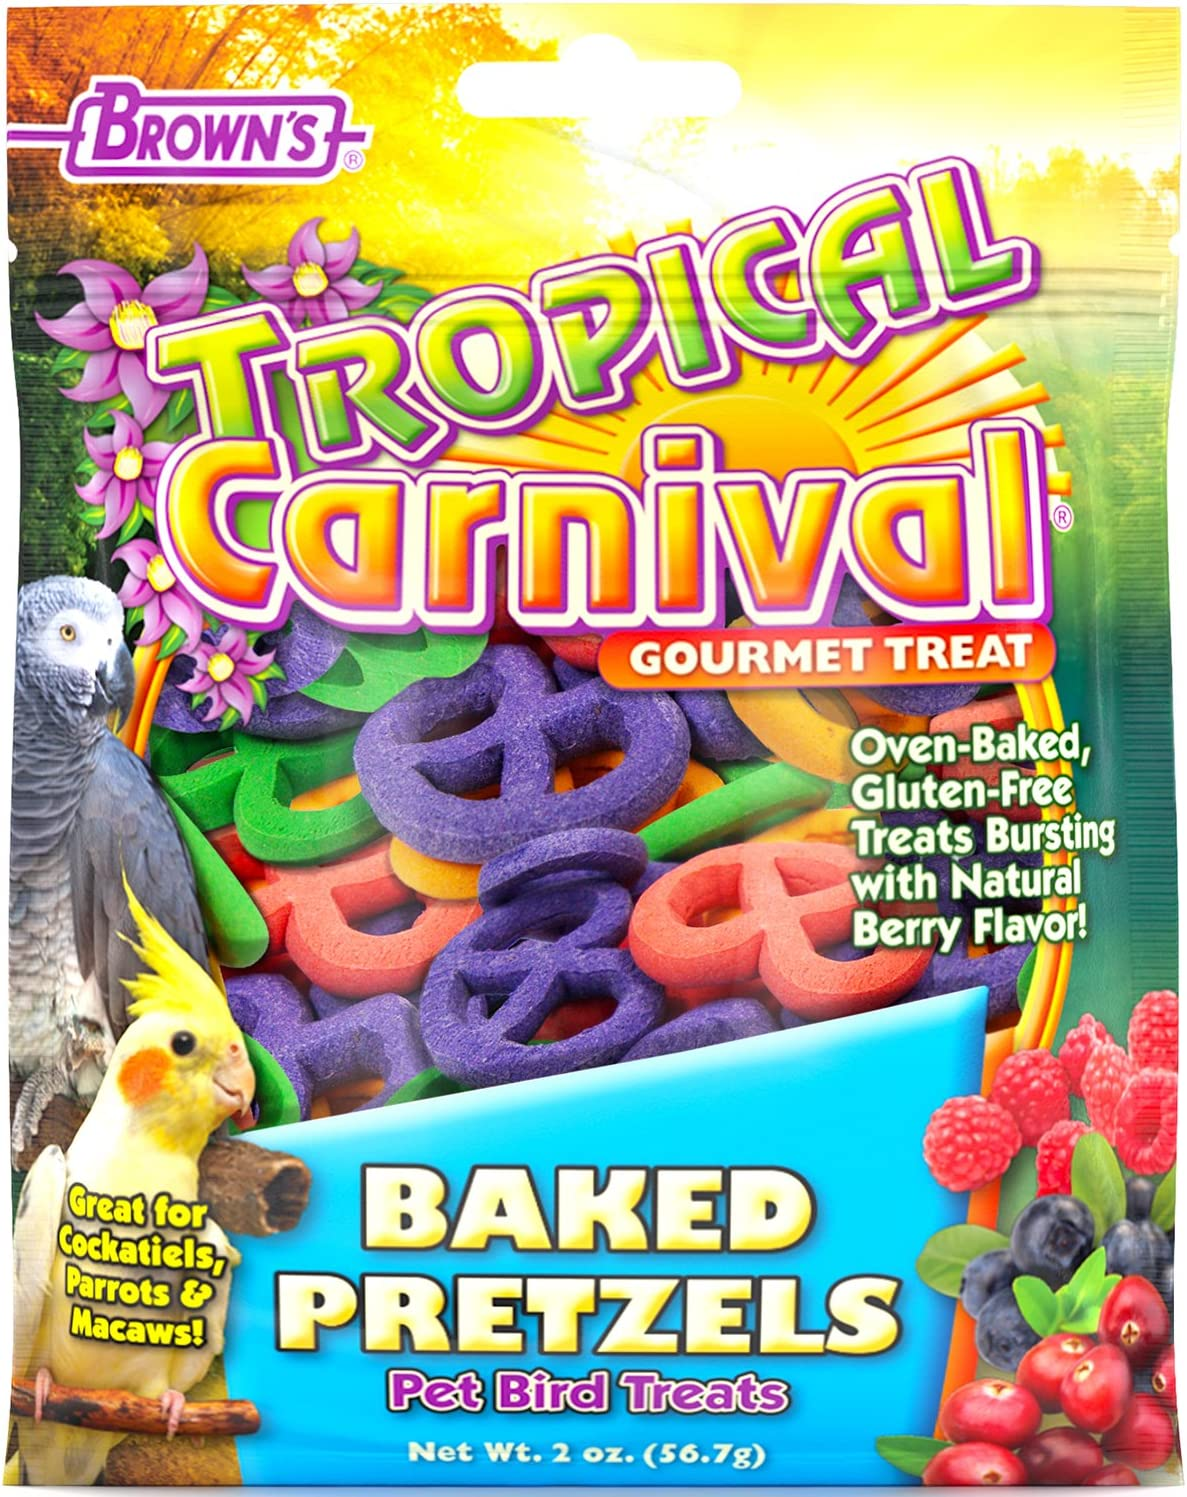 F.M. Brown's Tropical Carnival Baked Pretzels Treat for Pet Birds, 2-oz Bag - Gluten Free Chewing Treat for Cockatoos, Macaws, and Other Large Hookbills